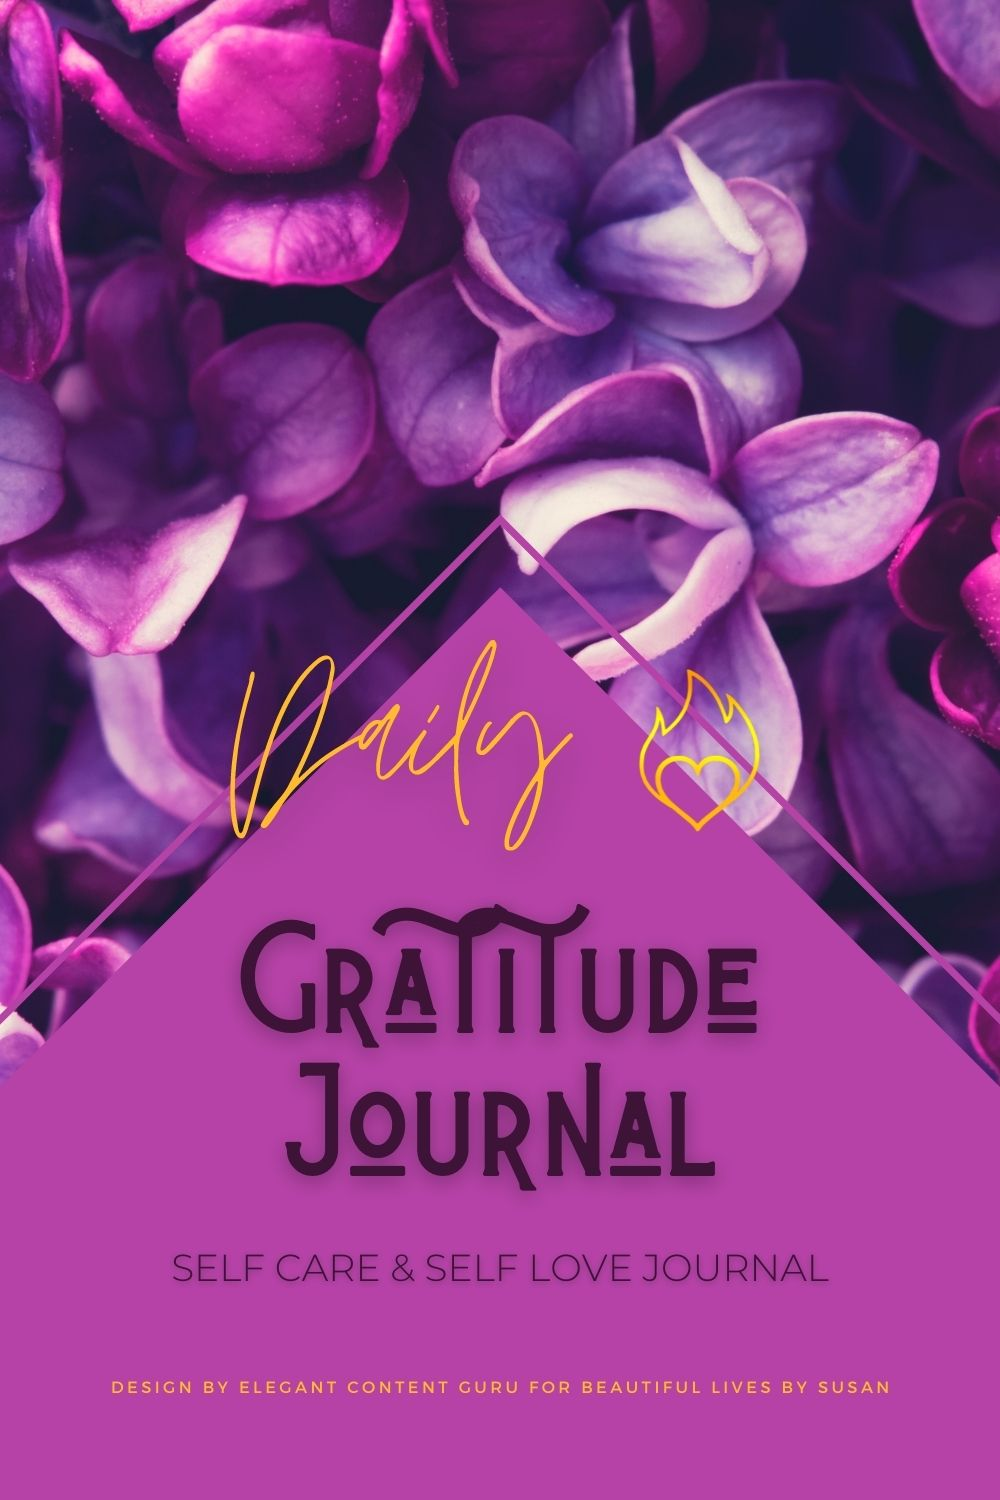 Daily Gratitude Journal with purple to pink flowers in background.